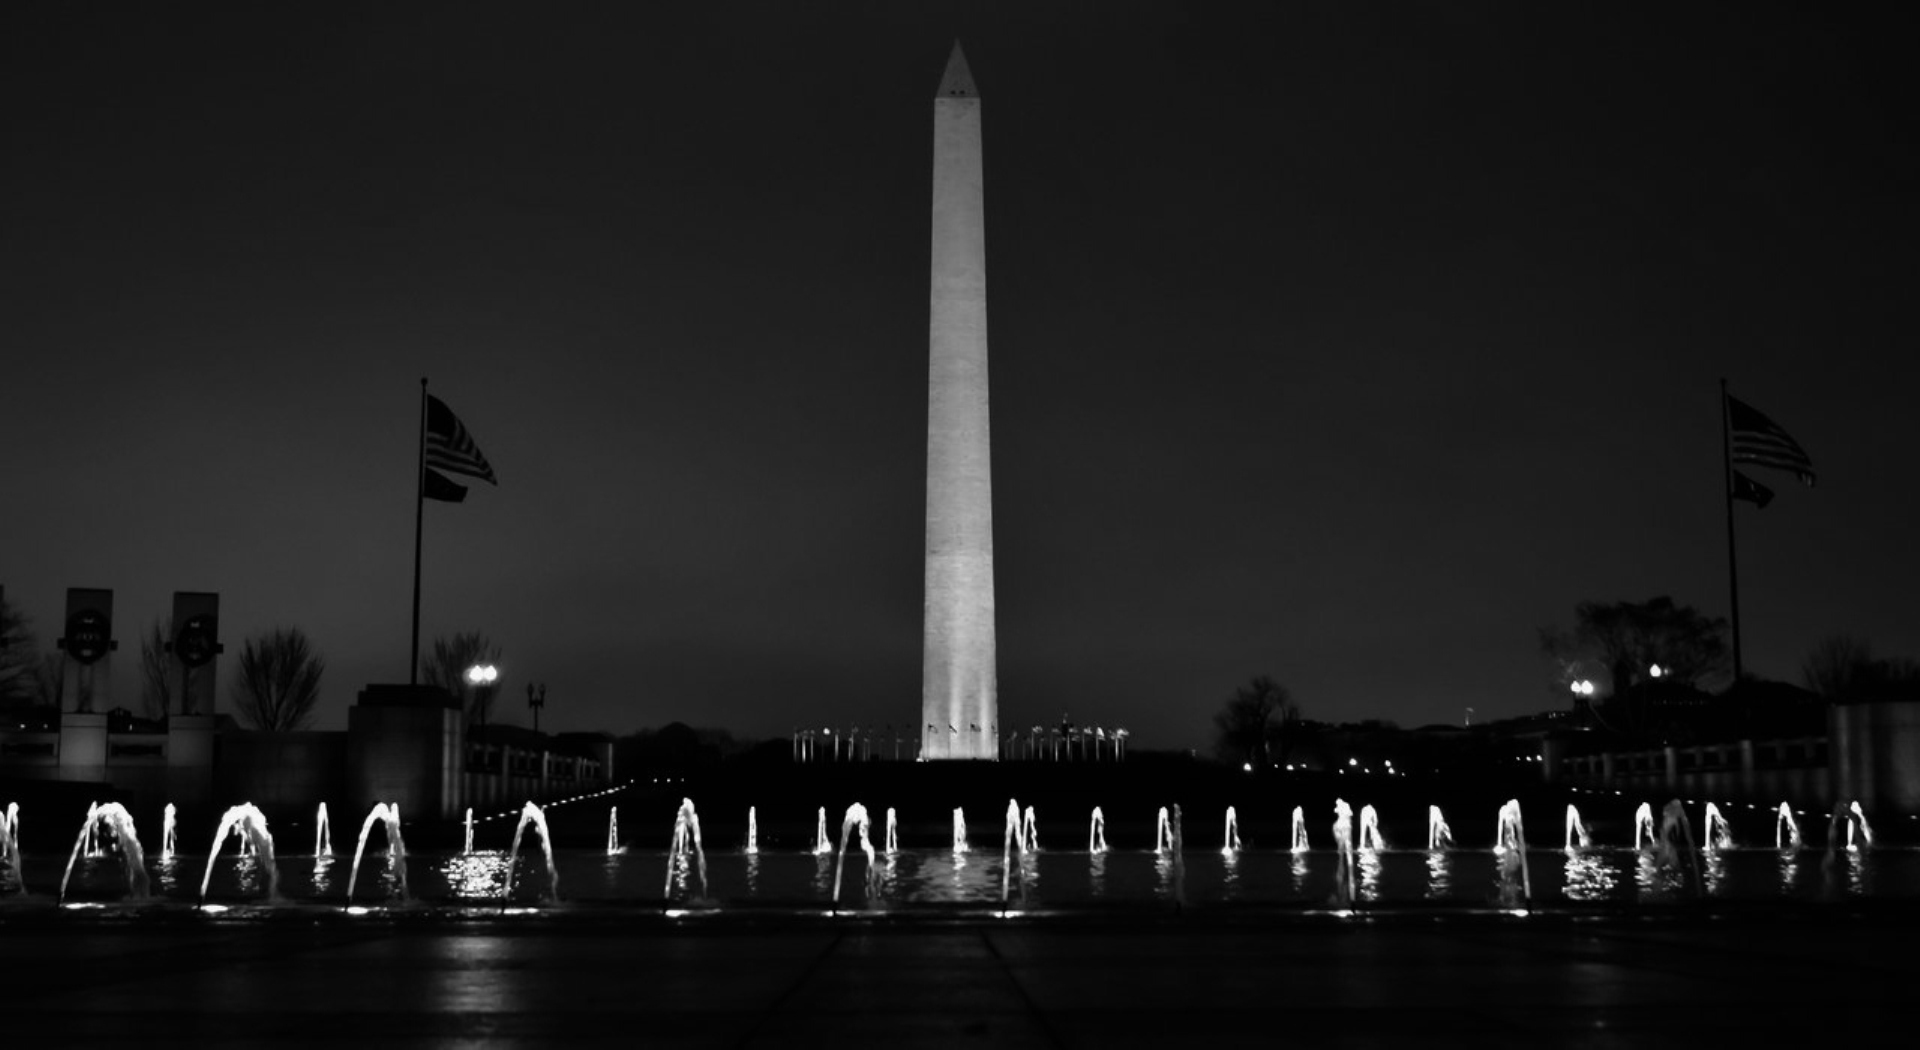 washington_monument_by_bluke01-d3d139w[3] (1280x700).jpg